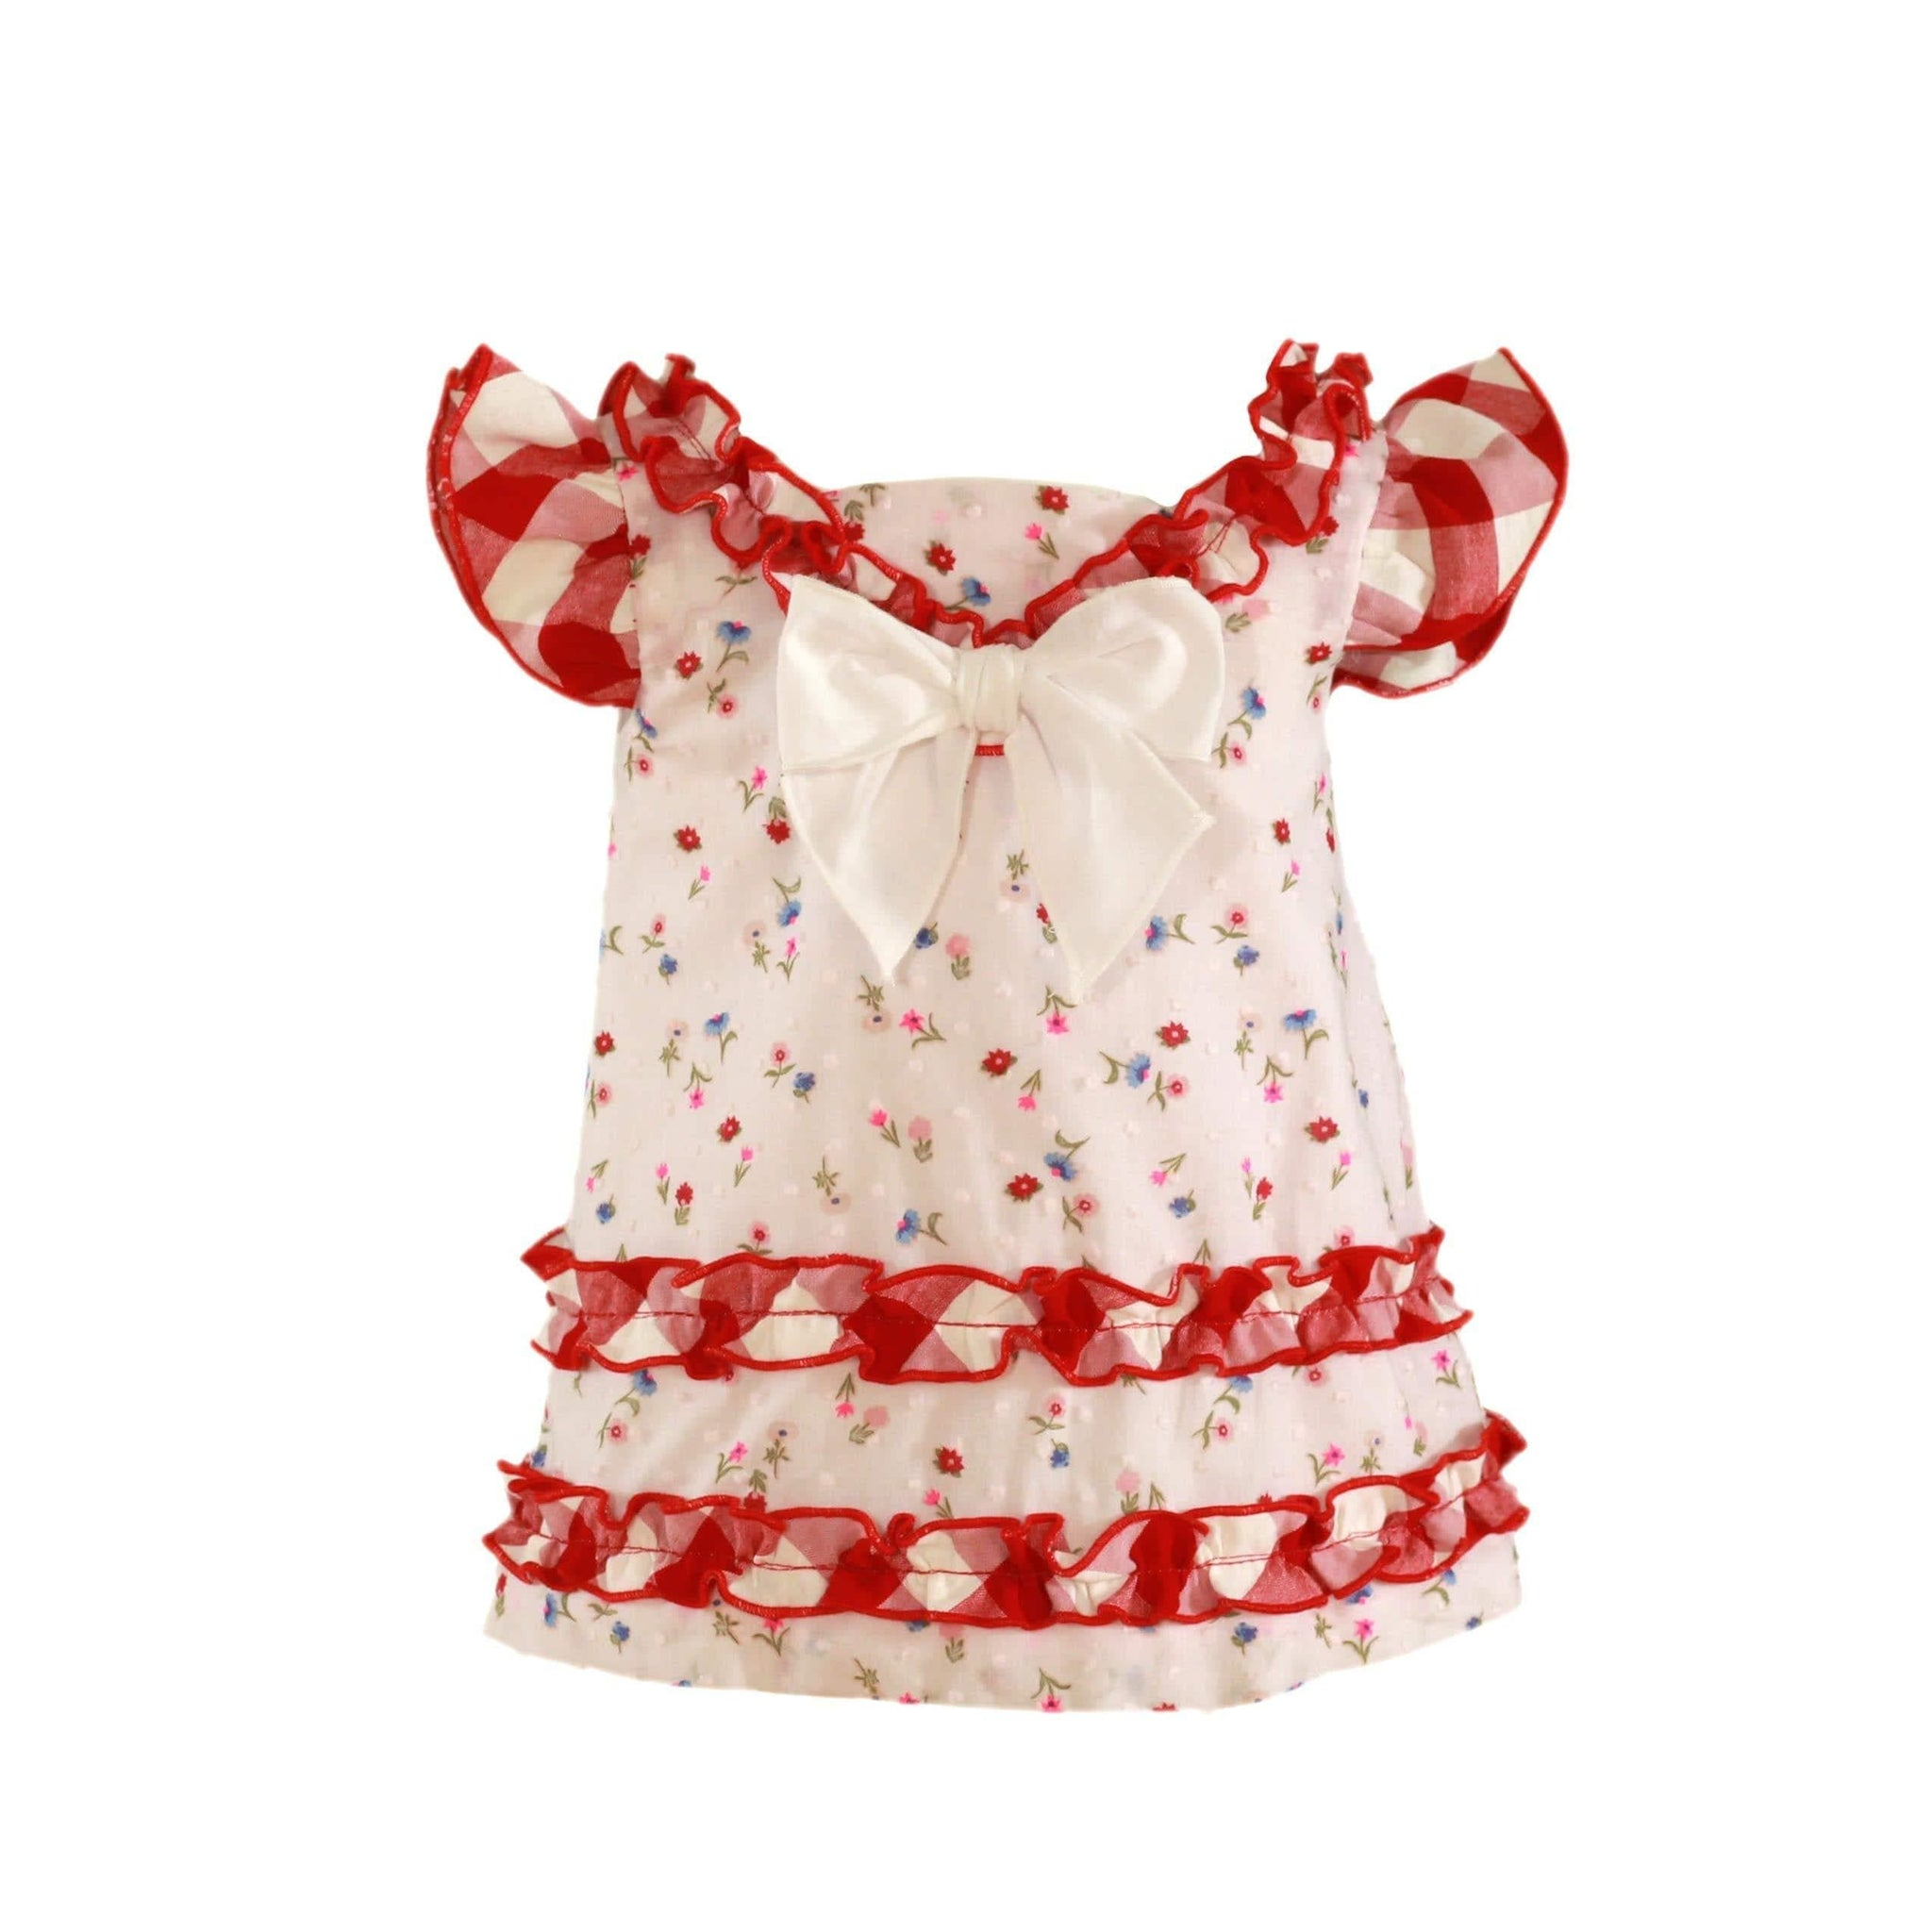 Miranda Baby Girls Dress Miranda SS21 PRE-ORDER - Red & Cream Floral Print Baby Summer Dress 76V